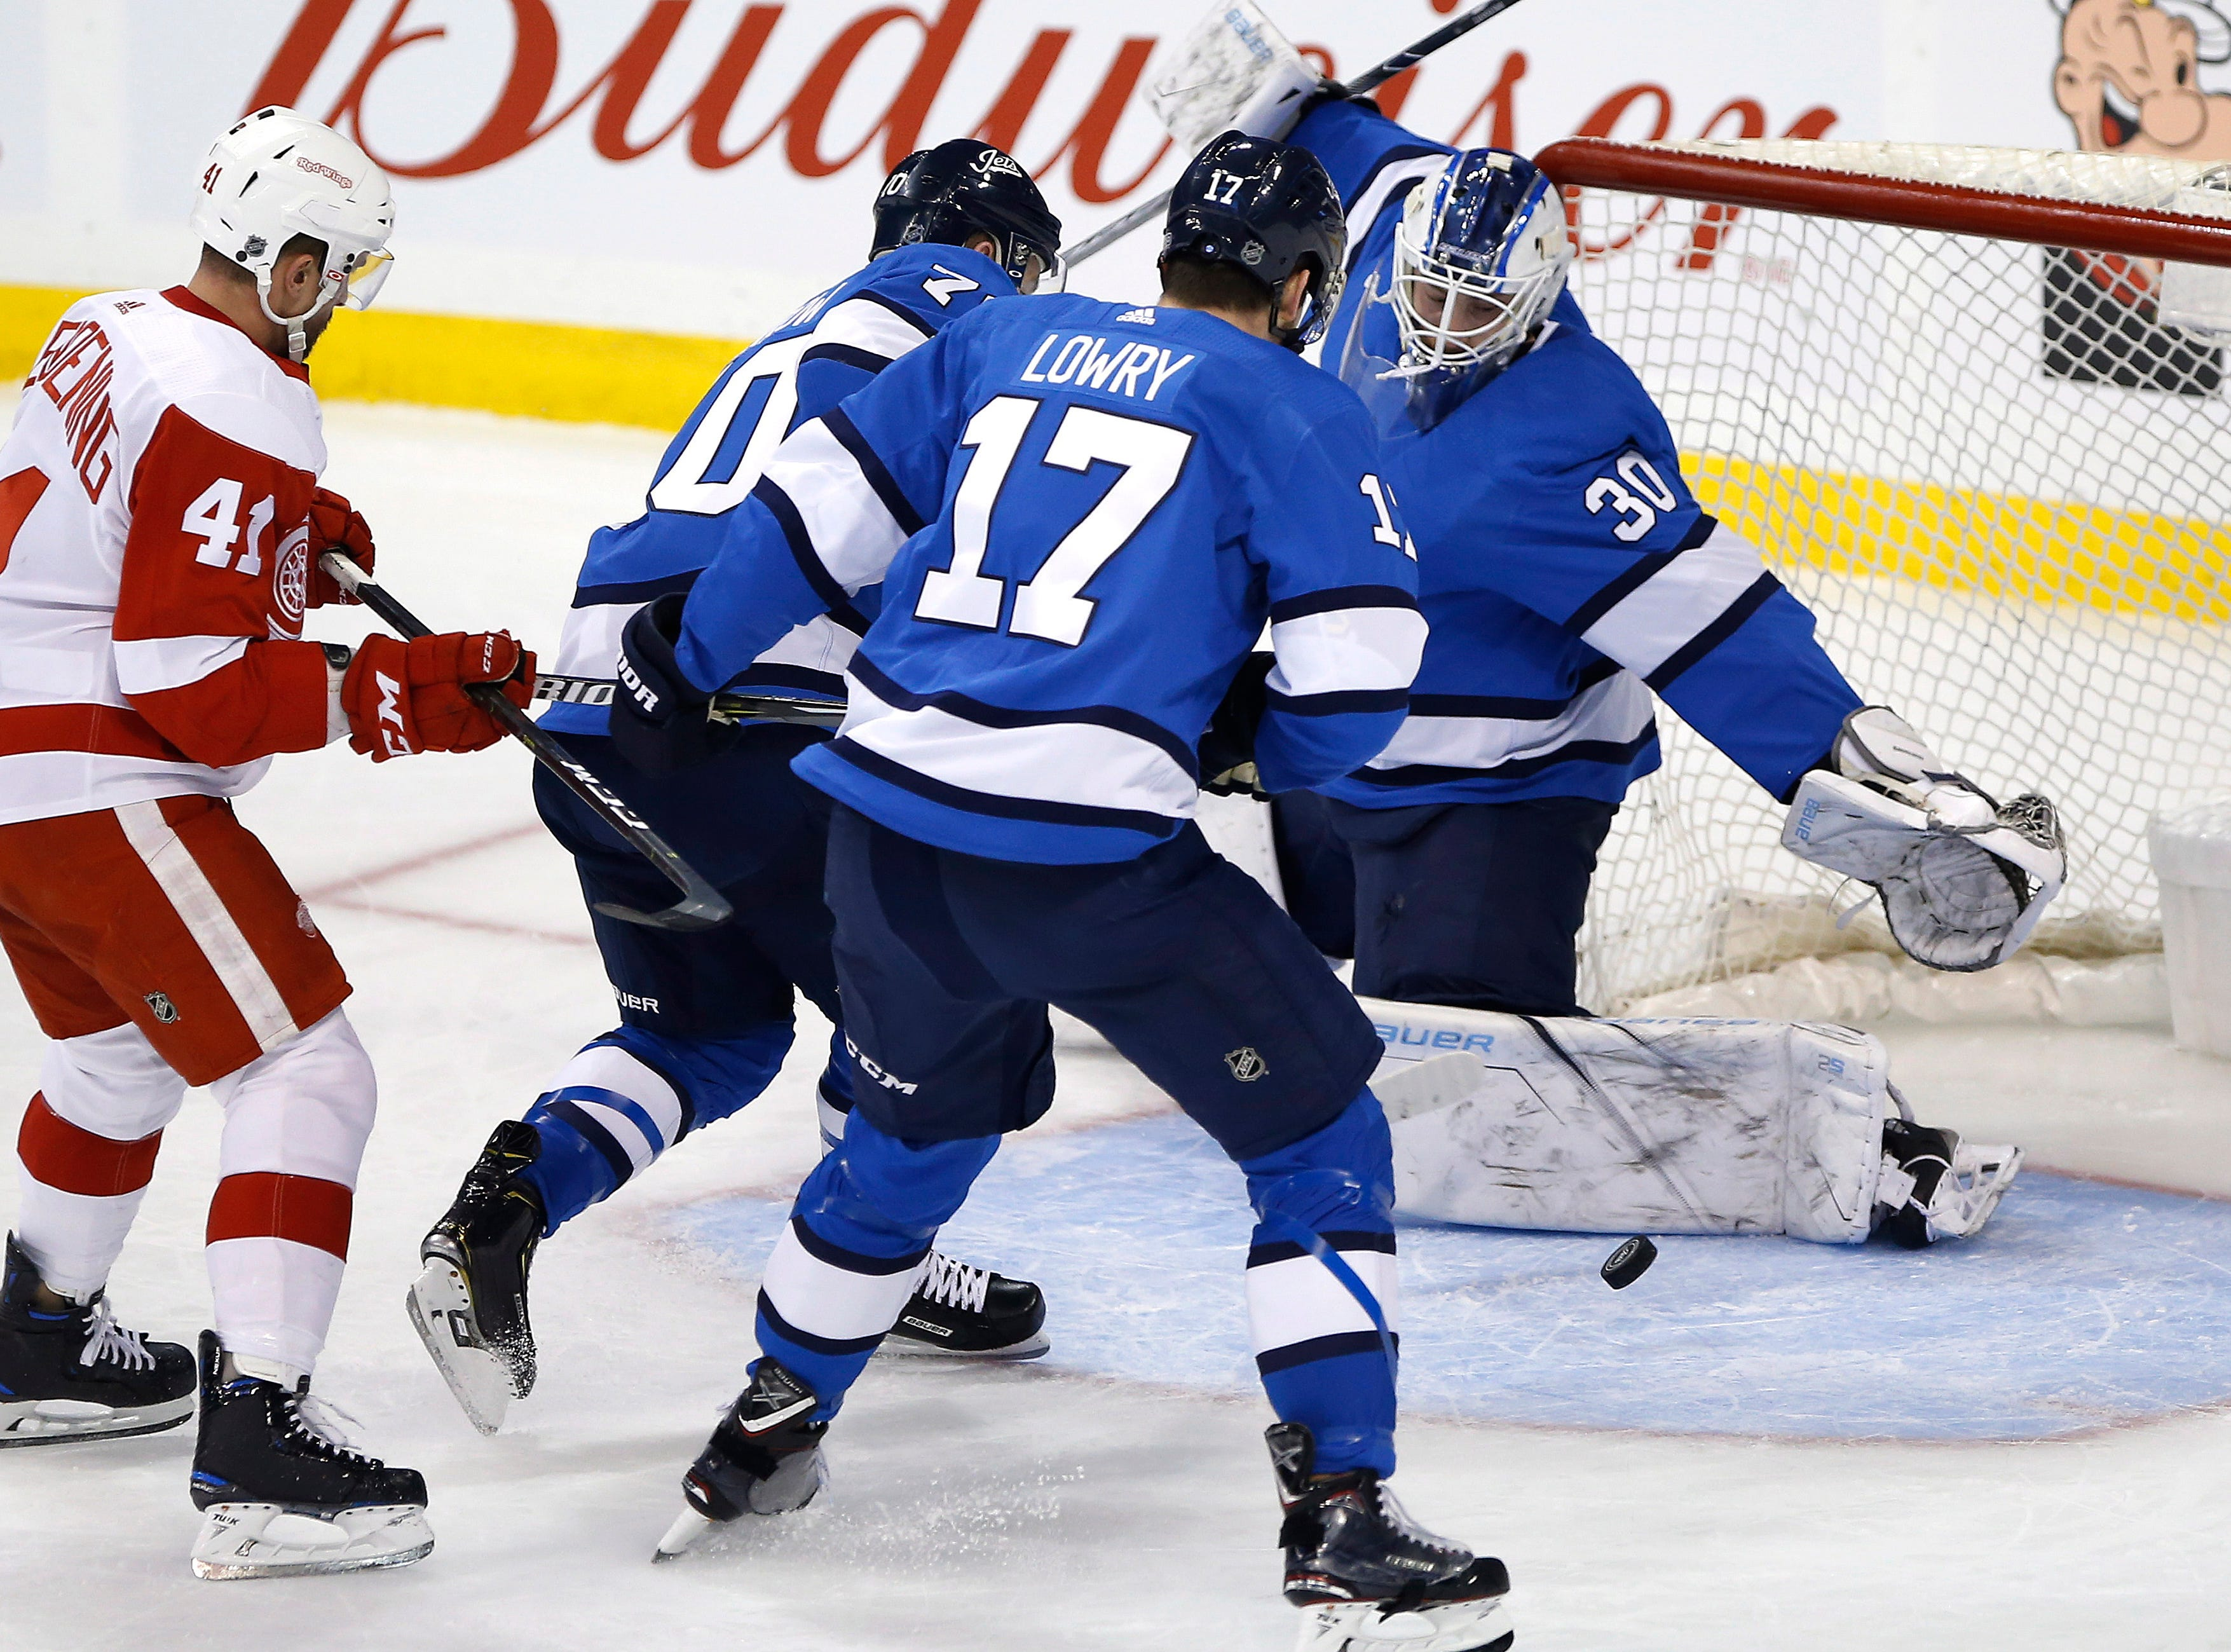 Winnipeg Jets goaltender Laurent Brossoit (30) makes the save on a shot by Detroit Red Wings' Luke Glendening (41) as Jets' Joe Morrow (70) and Adam Lowry (17) defend during first period.